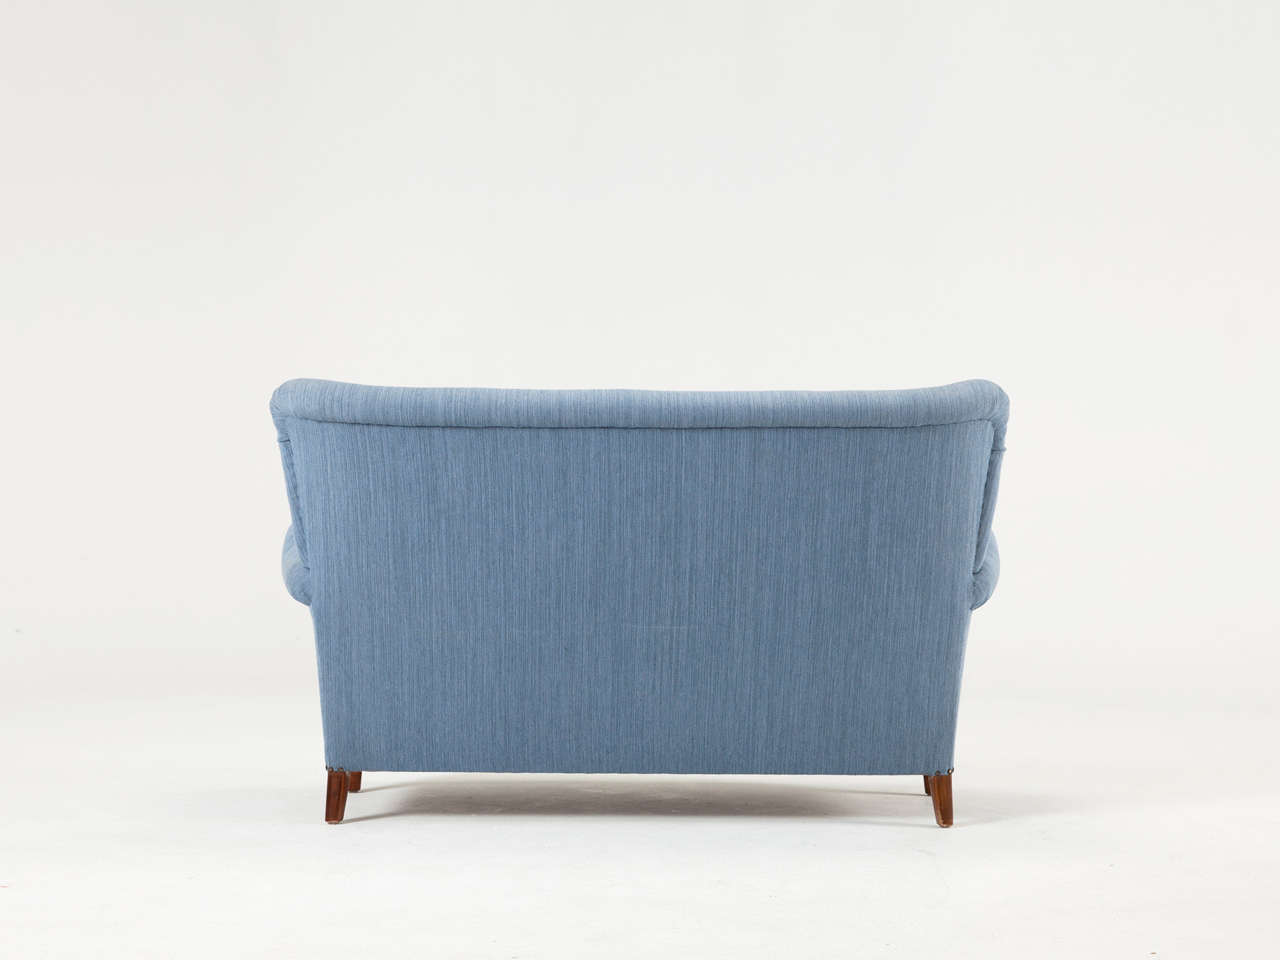 Swedish Blue Two-Seat Sofa, 1950s In Good Condition For Sale In Waalwijk, NL